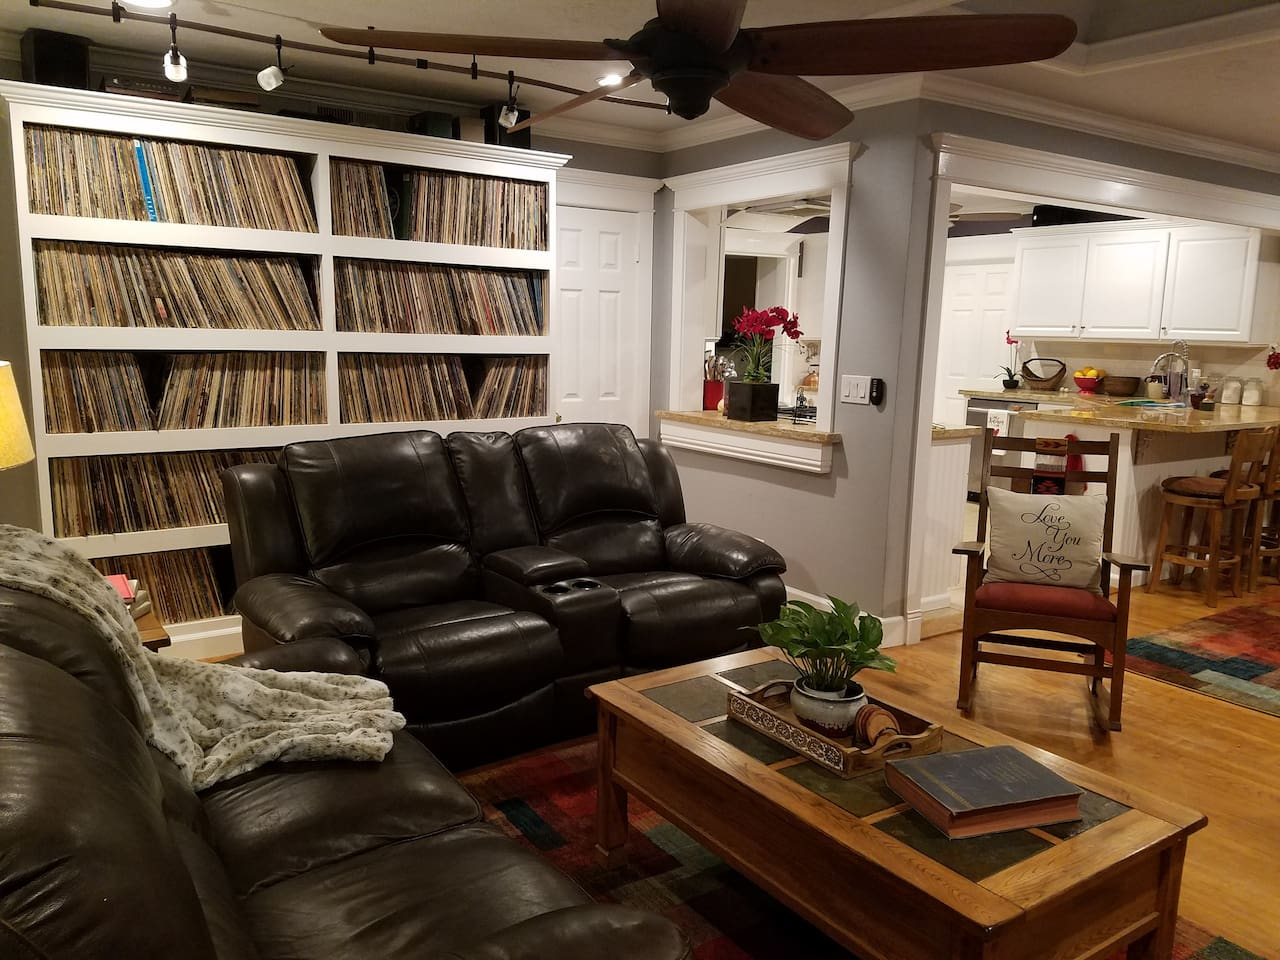 Over 5,000 vintage vinyl albums to enjoy in a 3BR, 2 BA house-3.4 miles from Disney!